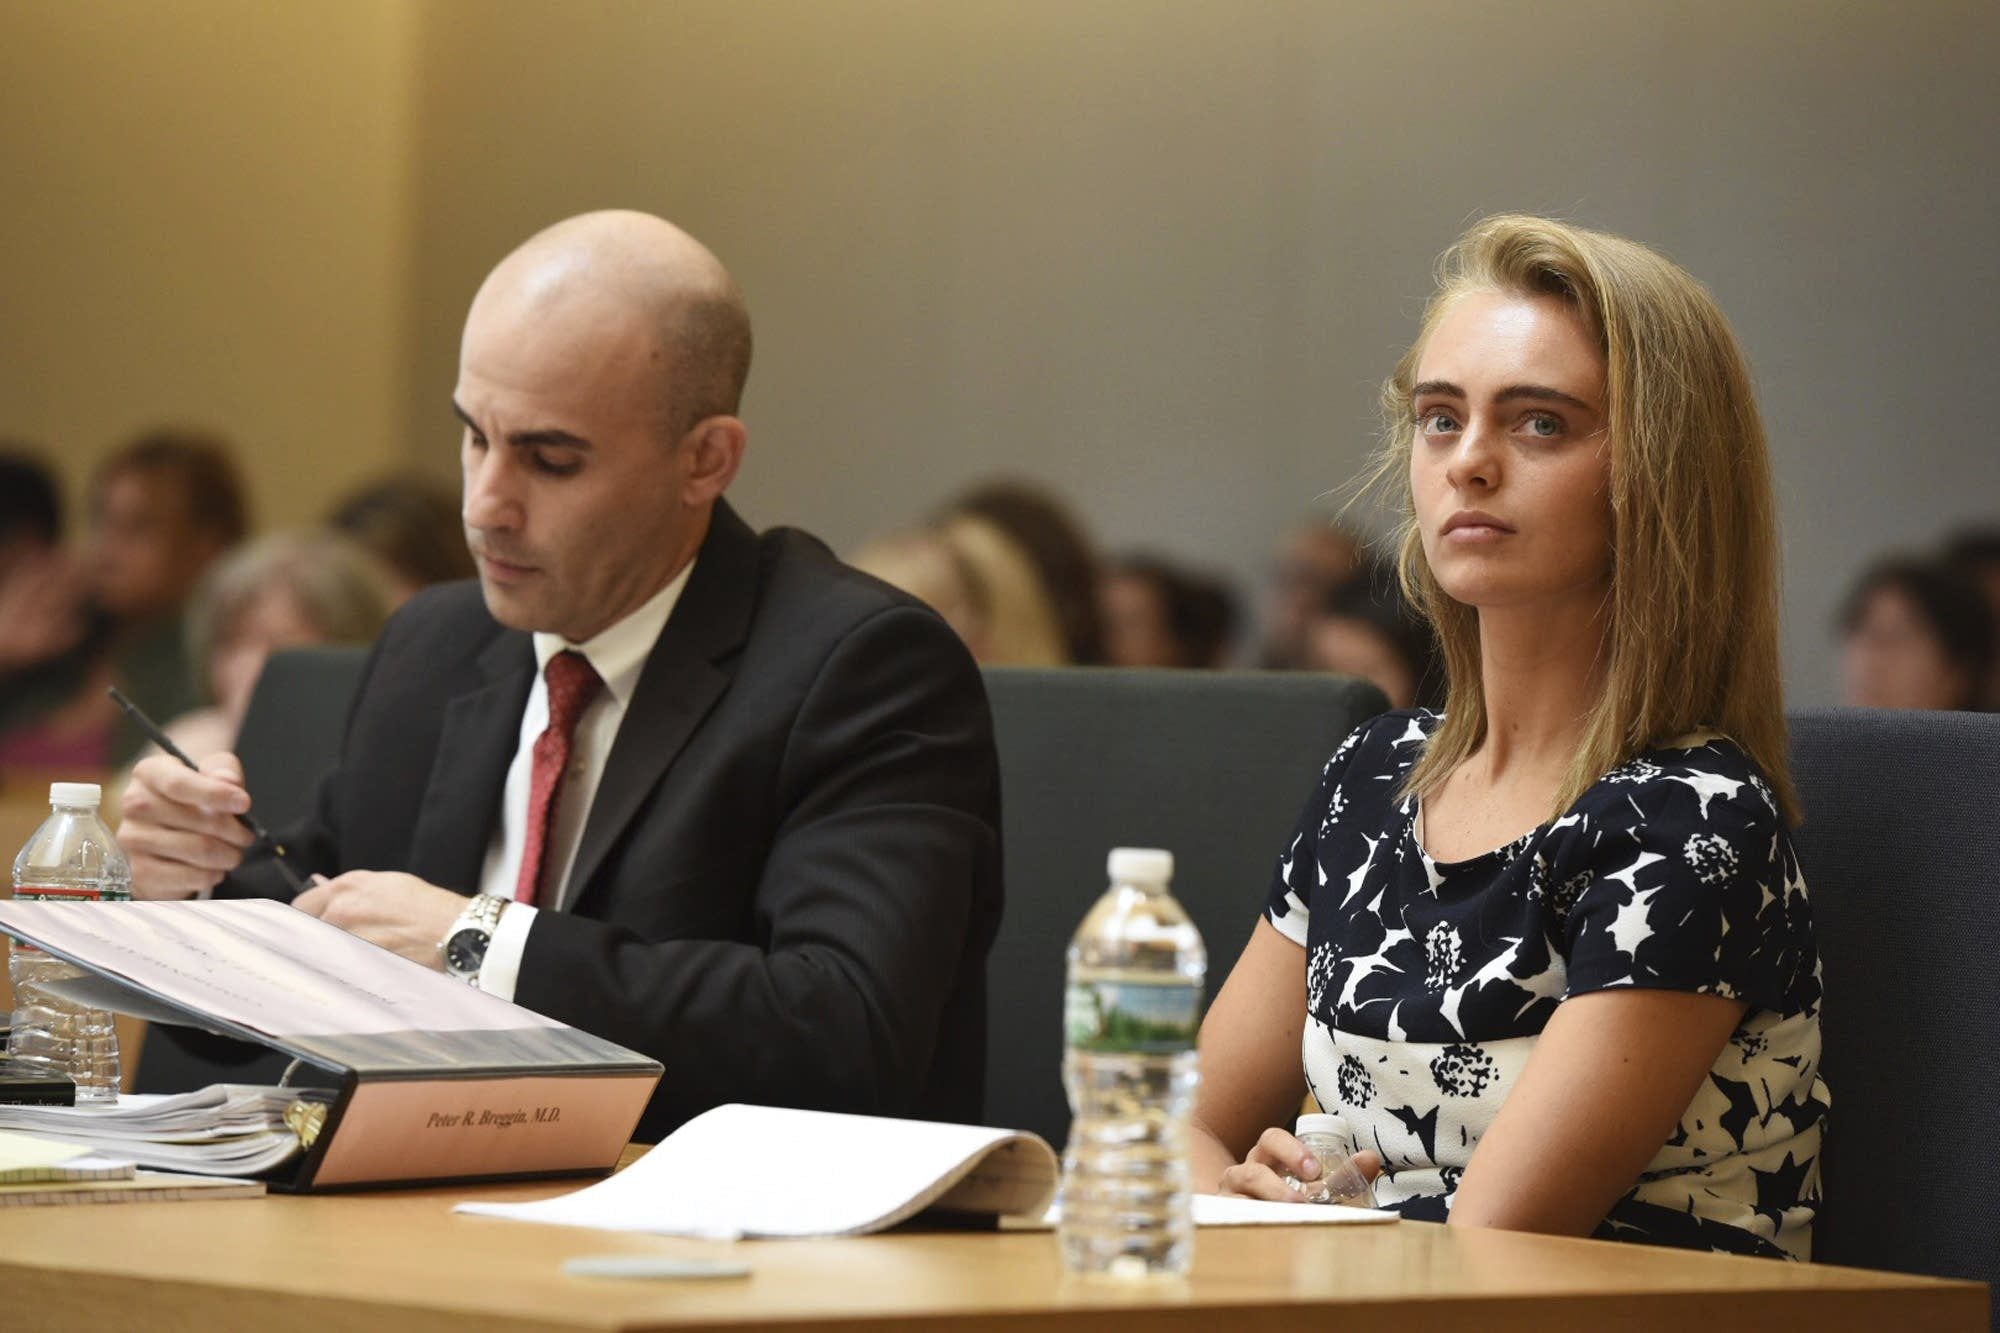 Michelle Carter Found Guilty After Urging Her Boyfriend to Commit Suicide in Text Messages forecast